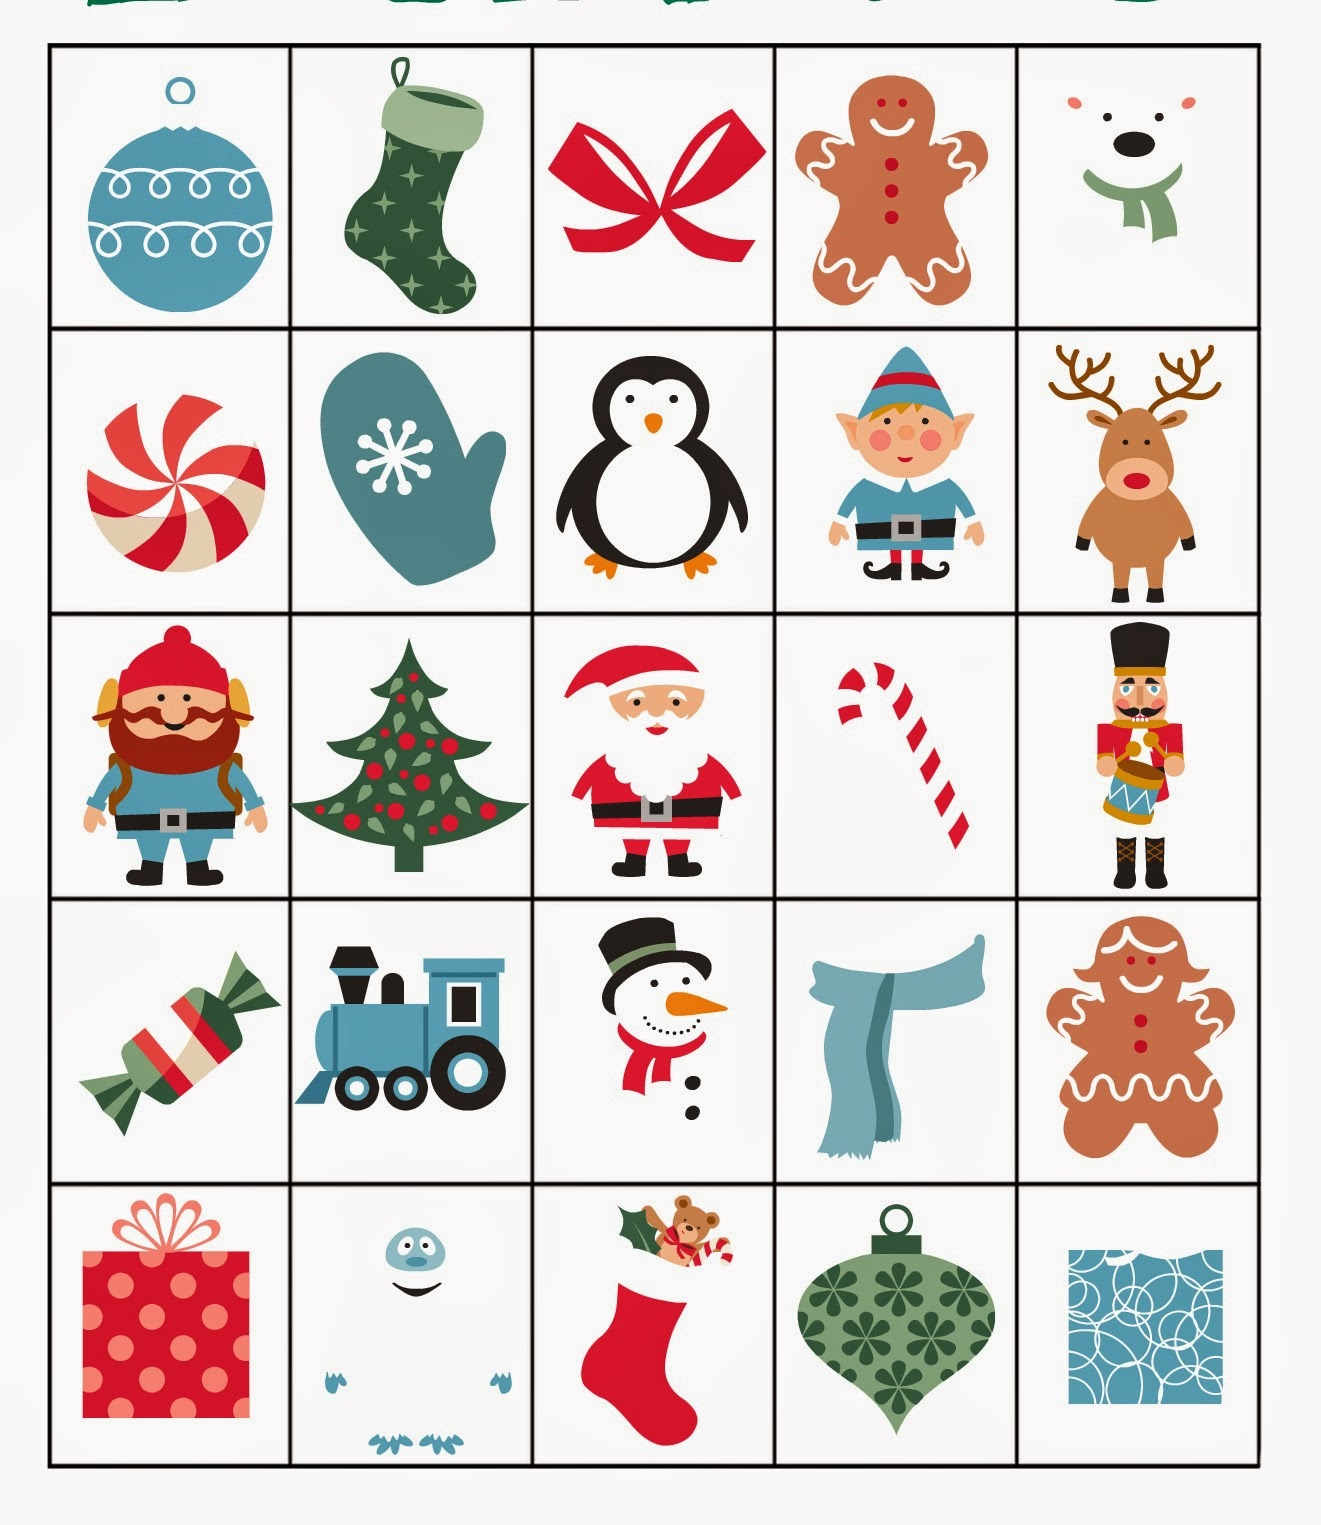 Blue Skies Ahead: Printable Christmas Bingo